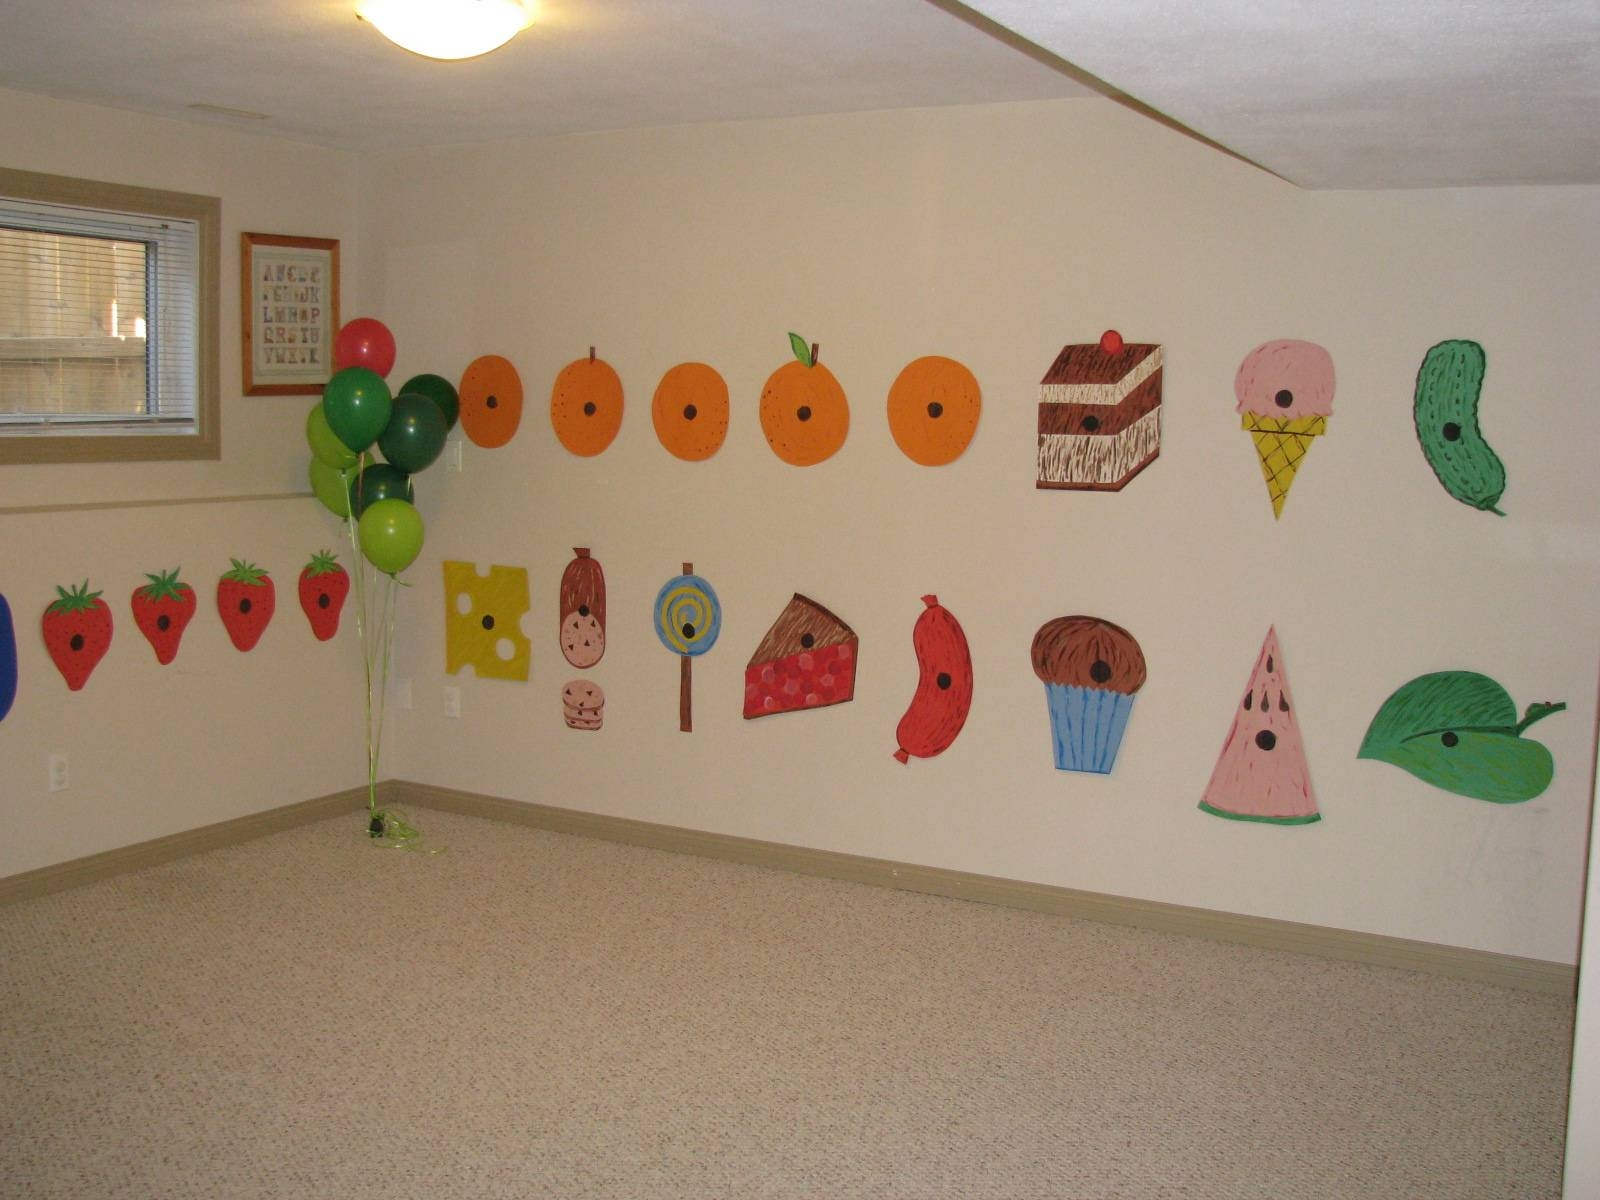 Making Merry Memories: The Very Hungry Caterpillar Party Intended For Most Recently Released The Very Hungry Caterpillar Wall Art (View 11 of 25)